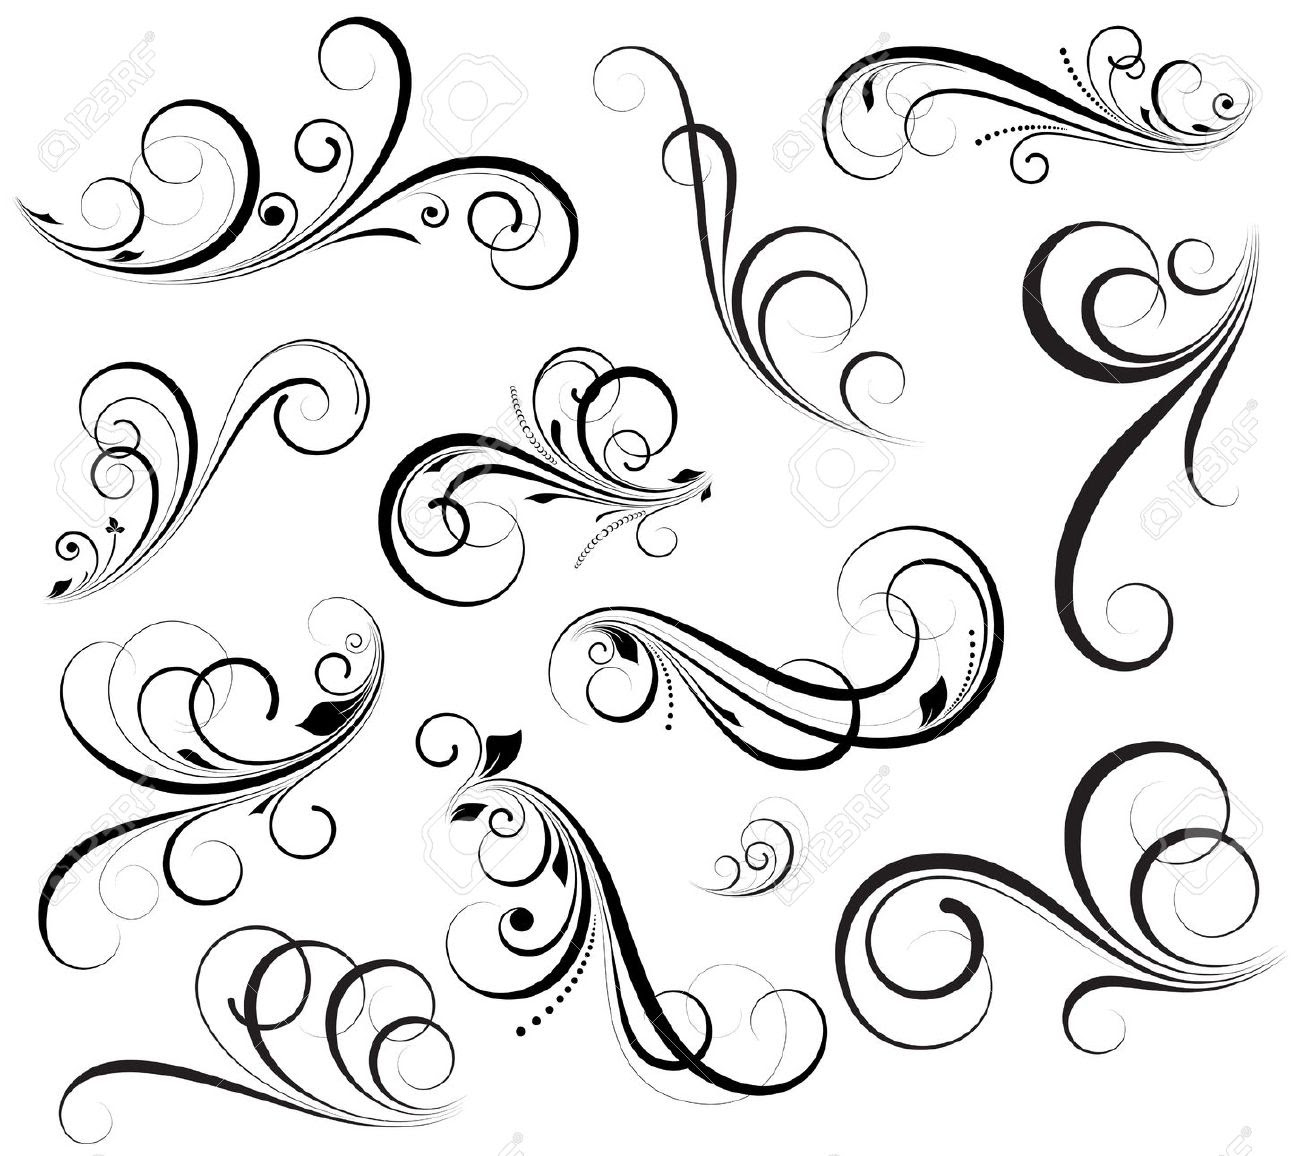 Swirl Drawing At Getdrawingscom Free For Personal Use Swirl